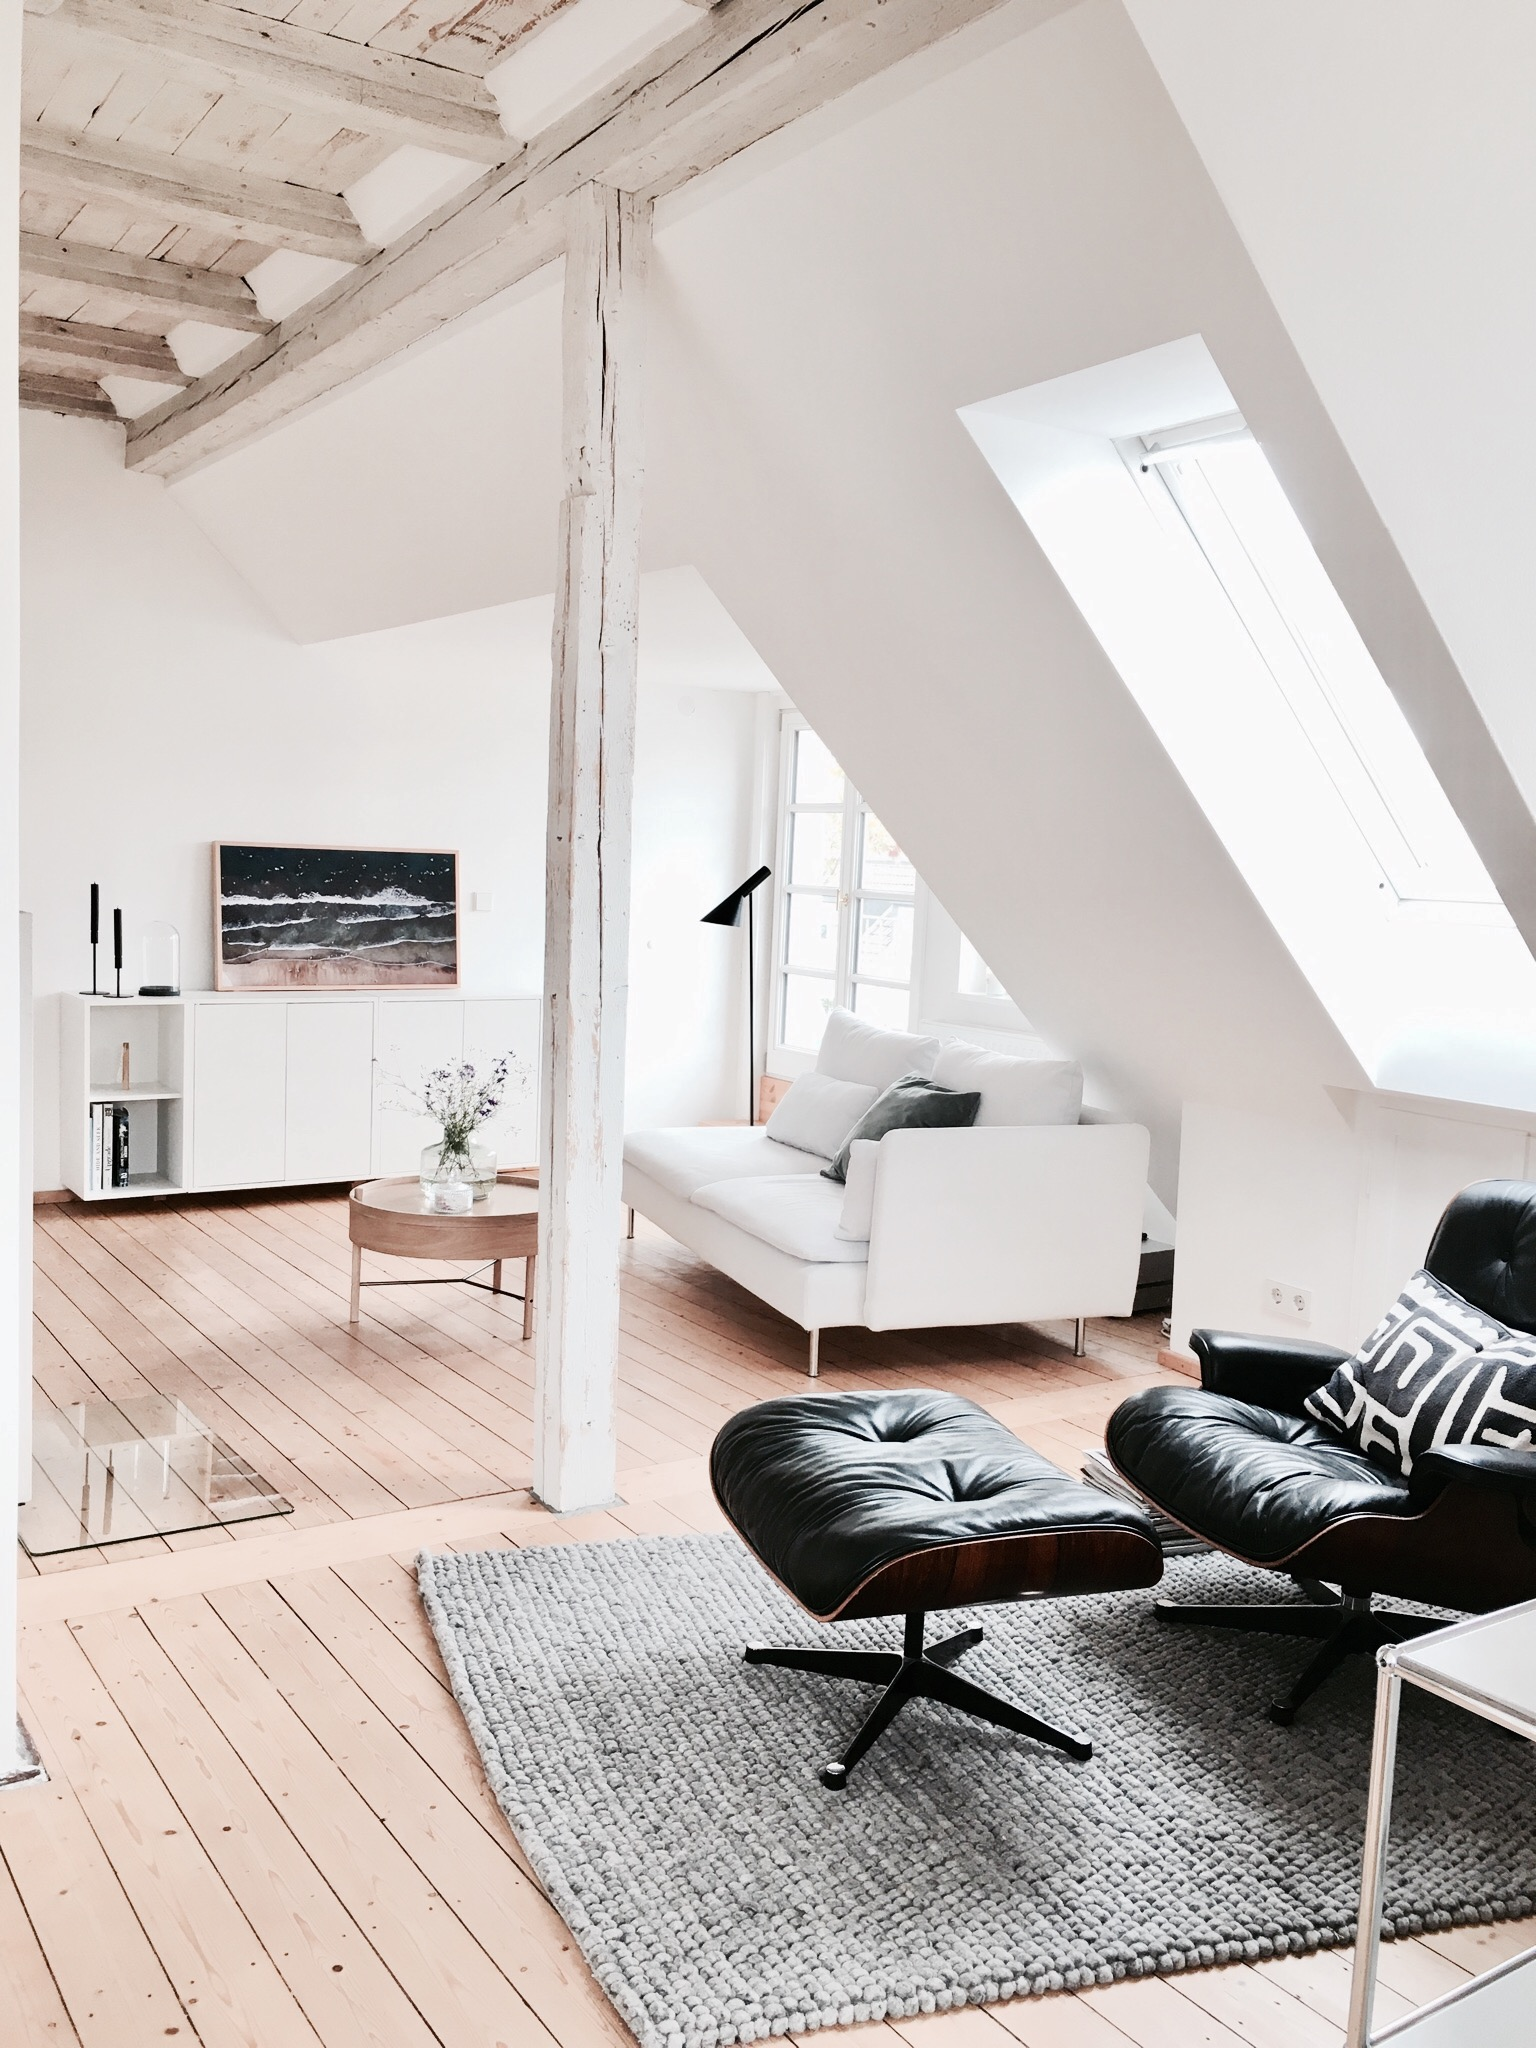 Tour A Hygge Minimalist Attic Apartment In Hannover Germany